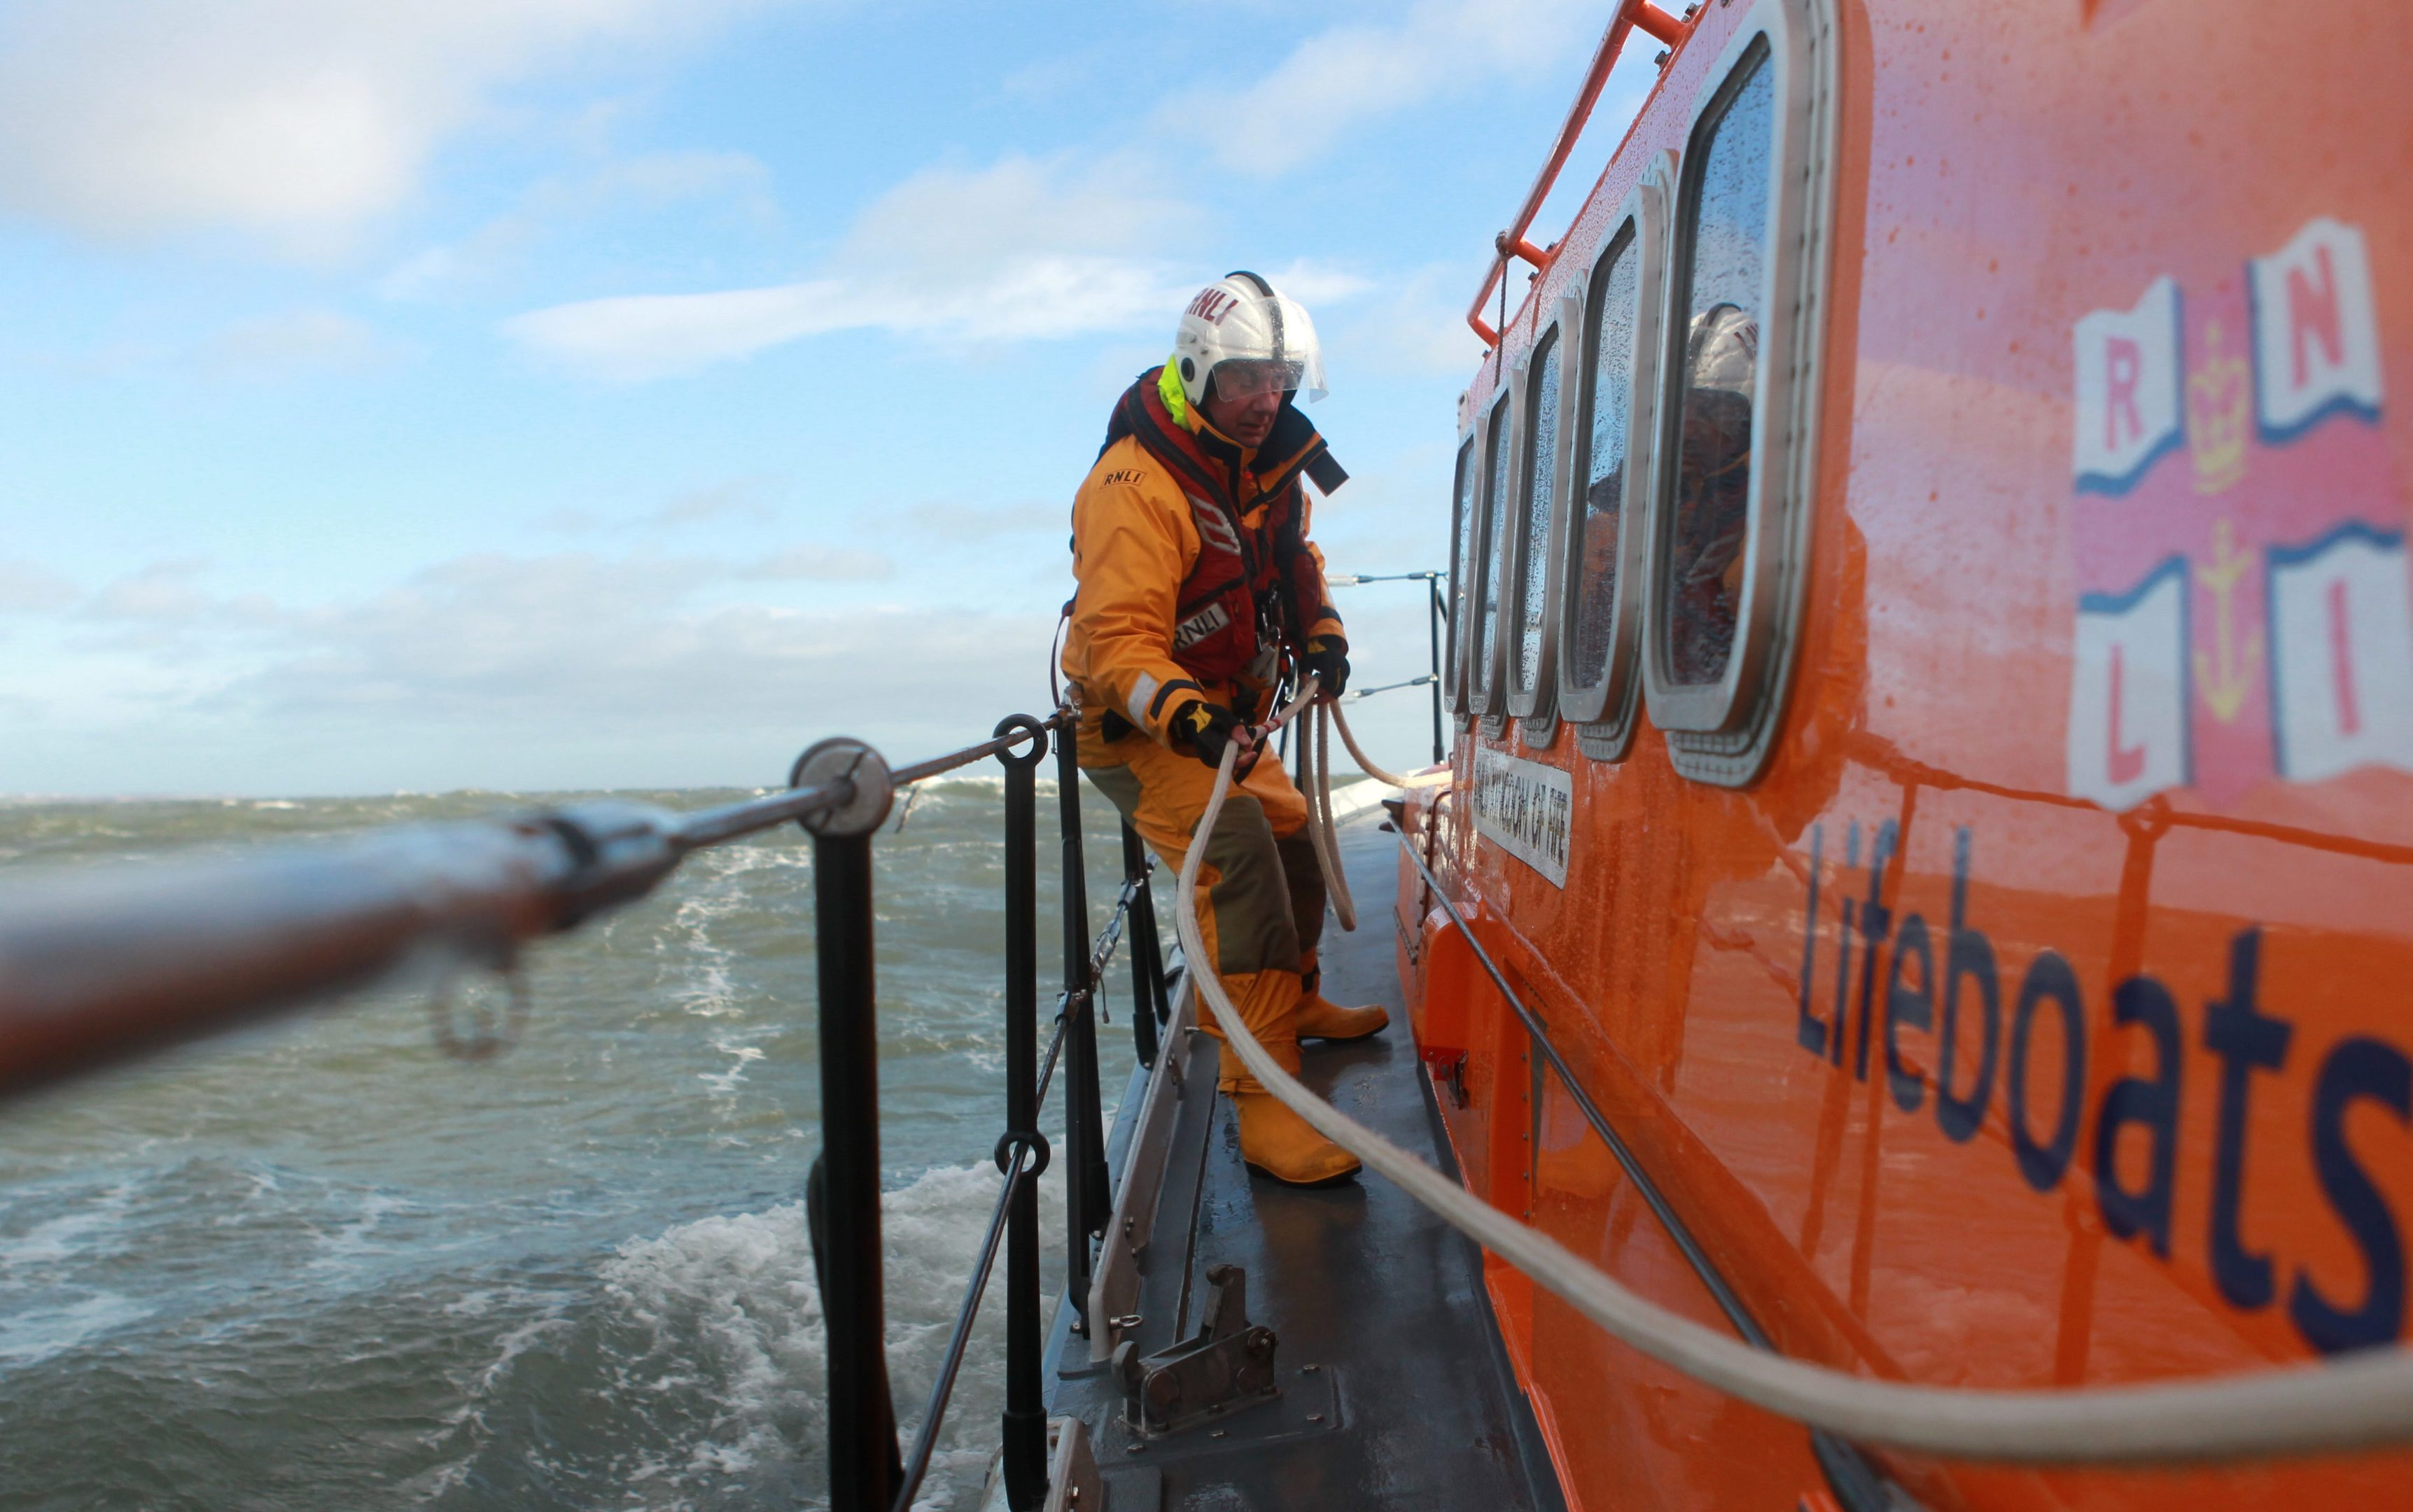 The Anstruther crew were called into action once more.